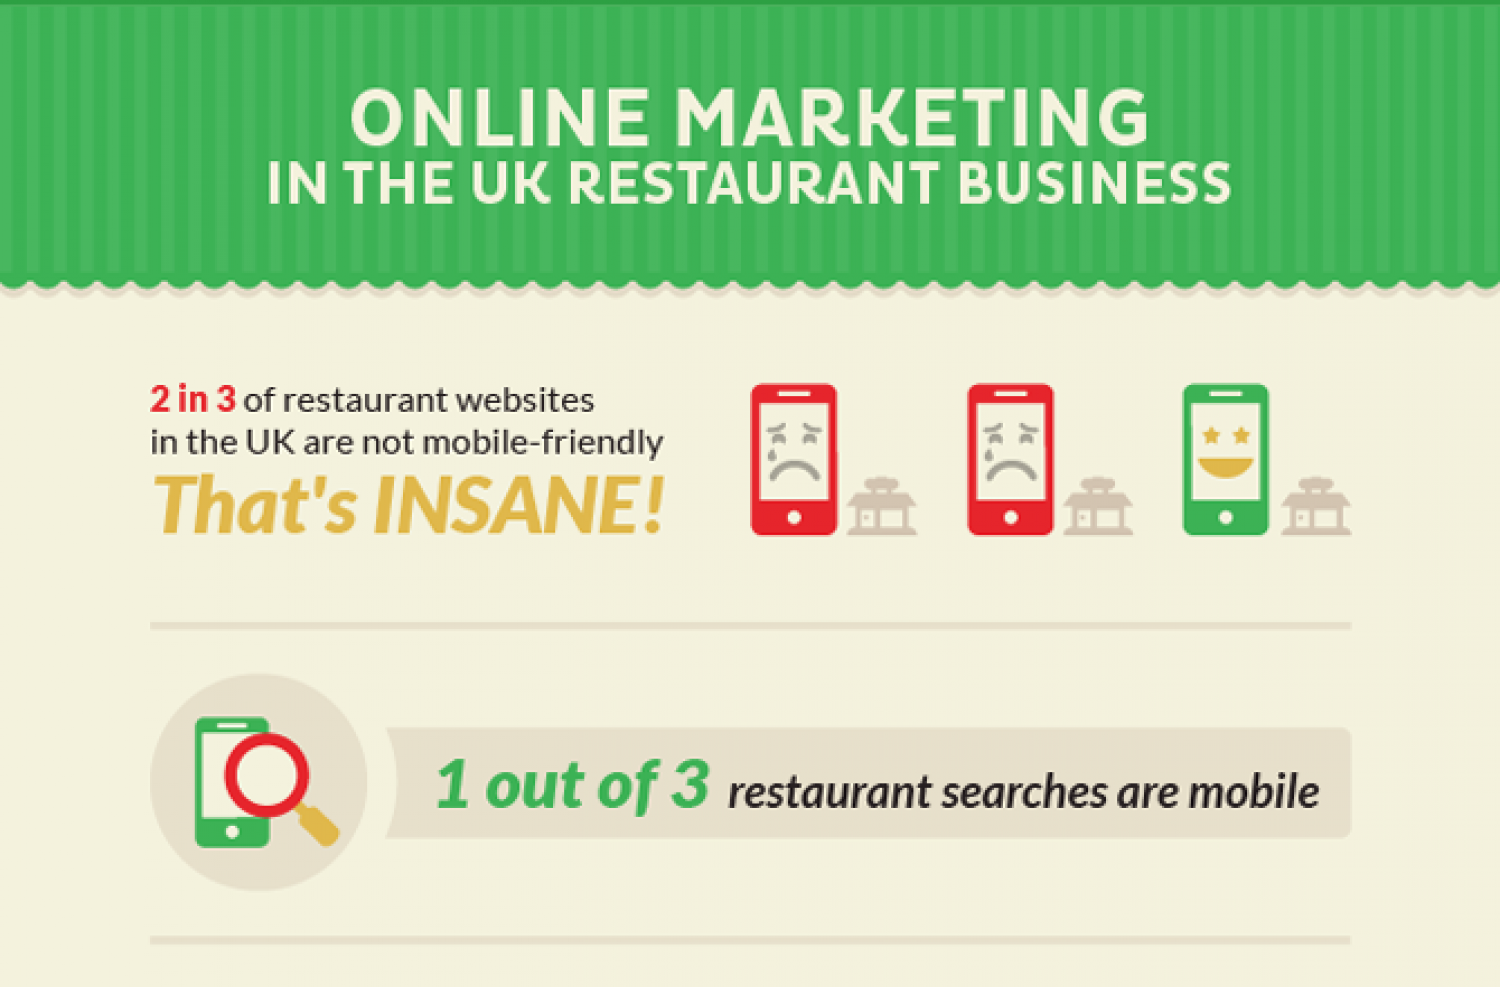 Online Marketing in the UK Restaurant Business Infographic